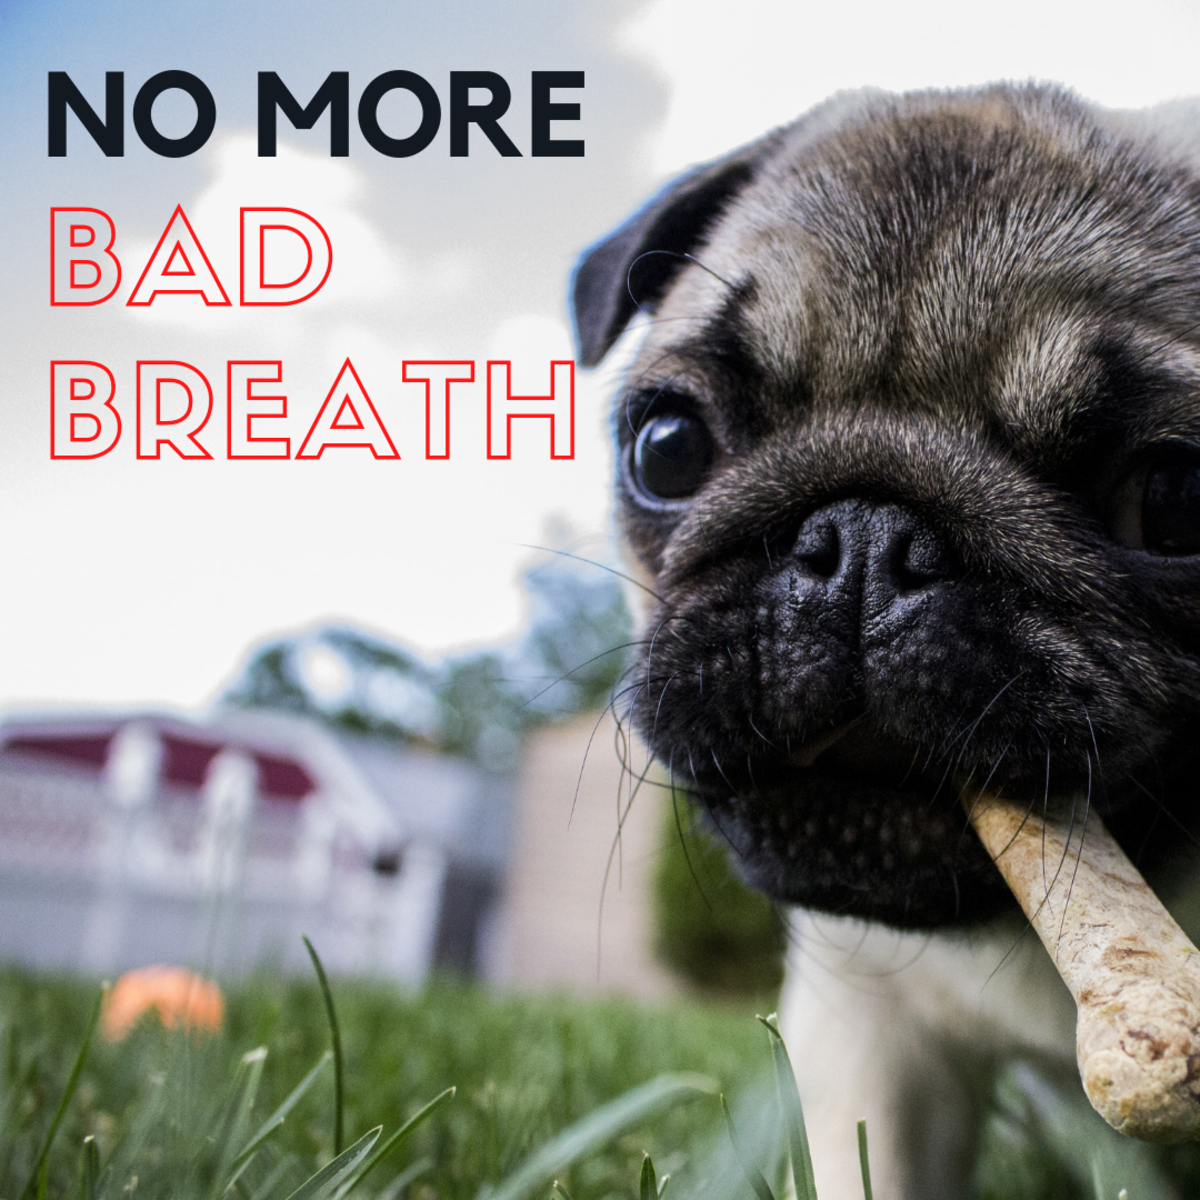 A Treat to Help Your Dog's Bad Breath